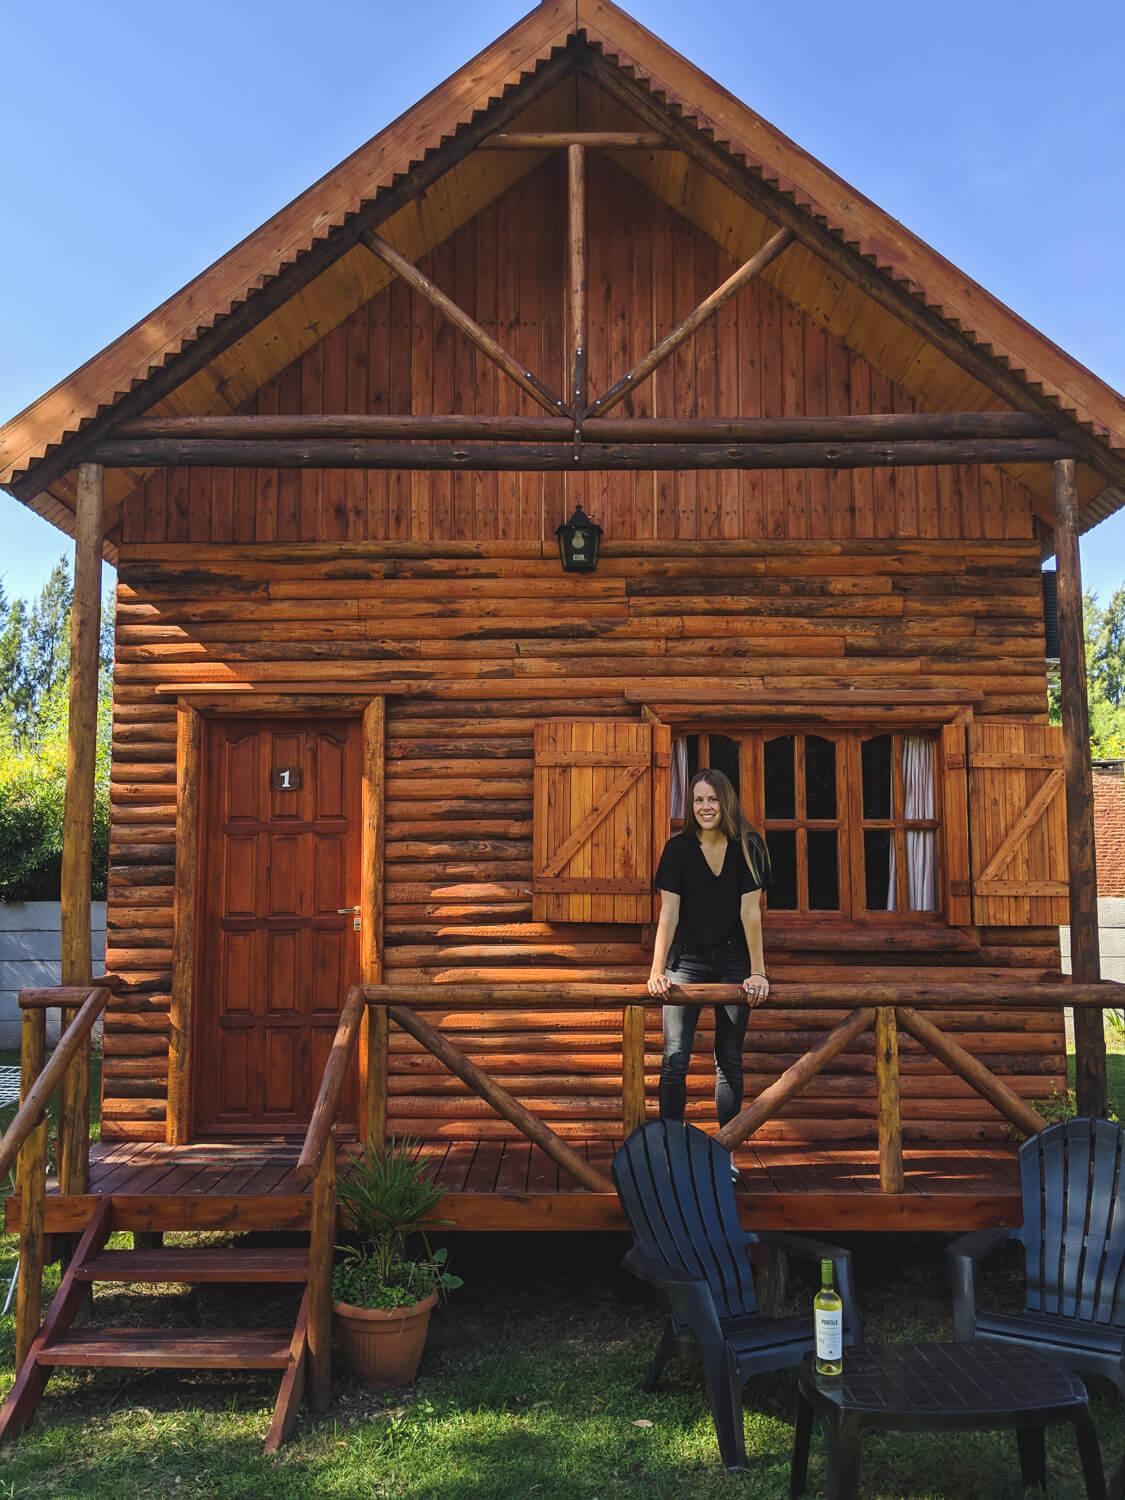 Where to stay in Chascomus